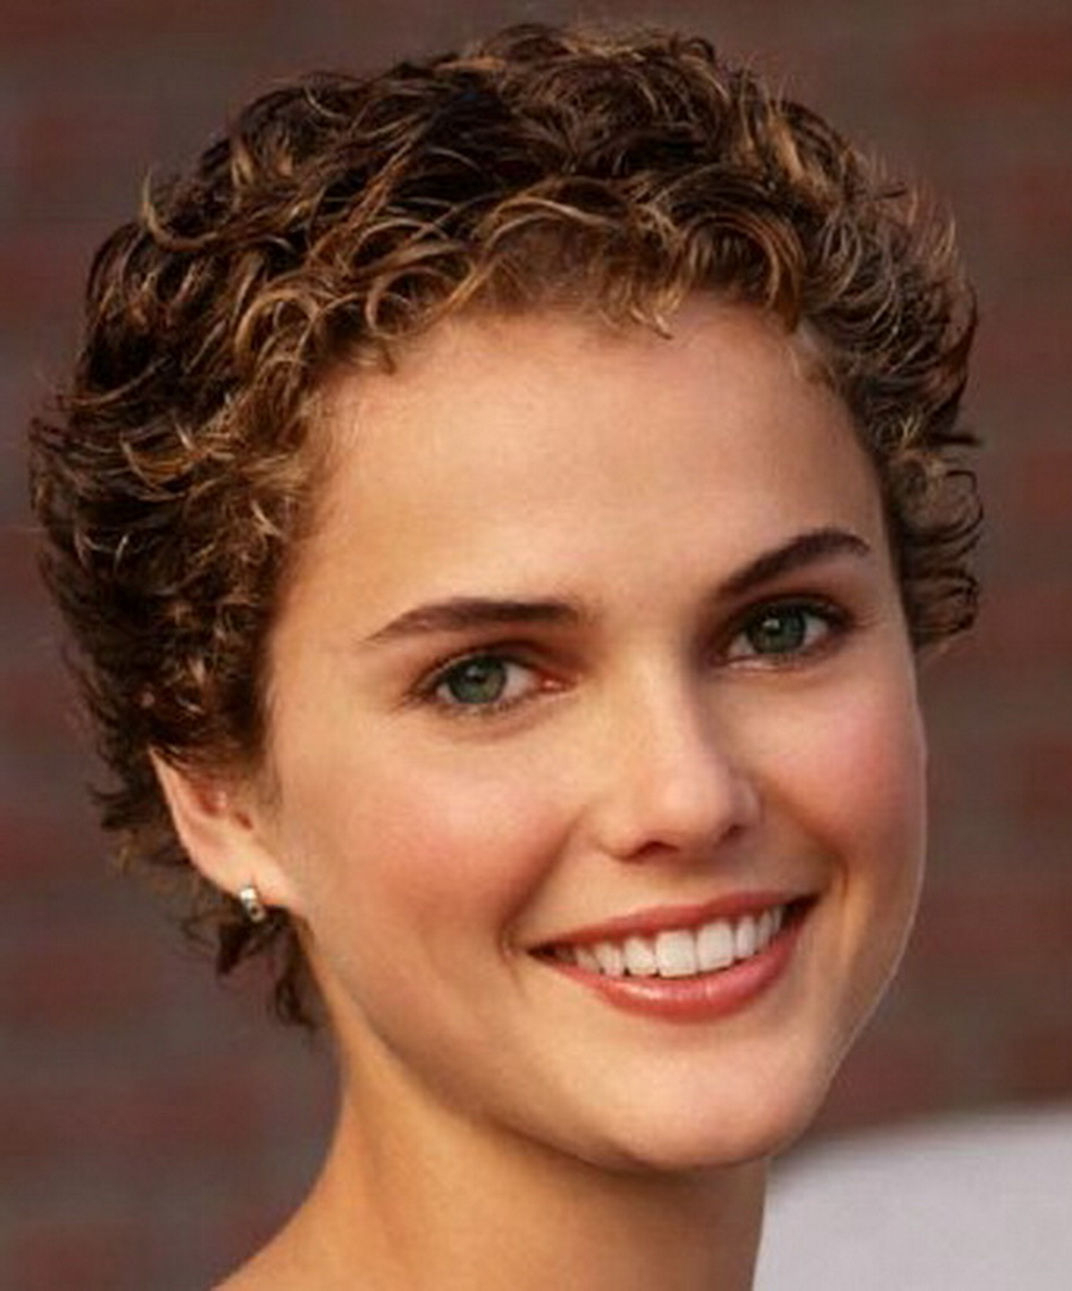 Short Curly Hairstyles For An Oval Face — White Salmon Wines : Fresh Regarding Curly Short Hairstyles For Oval Faces (View 8 of 25)